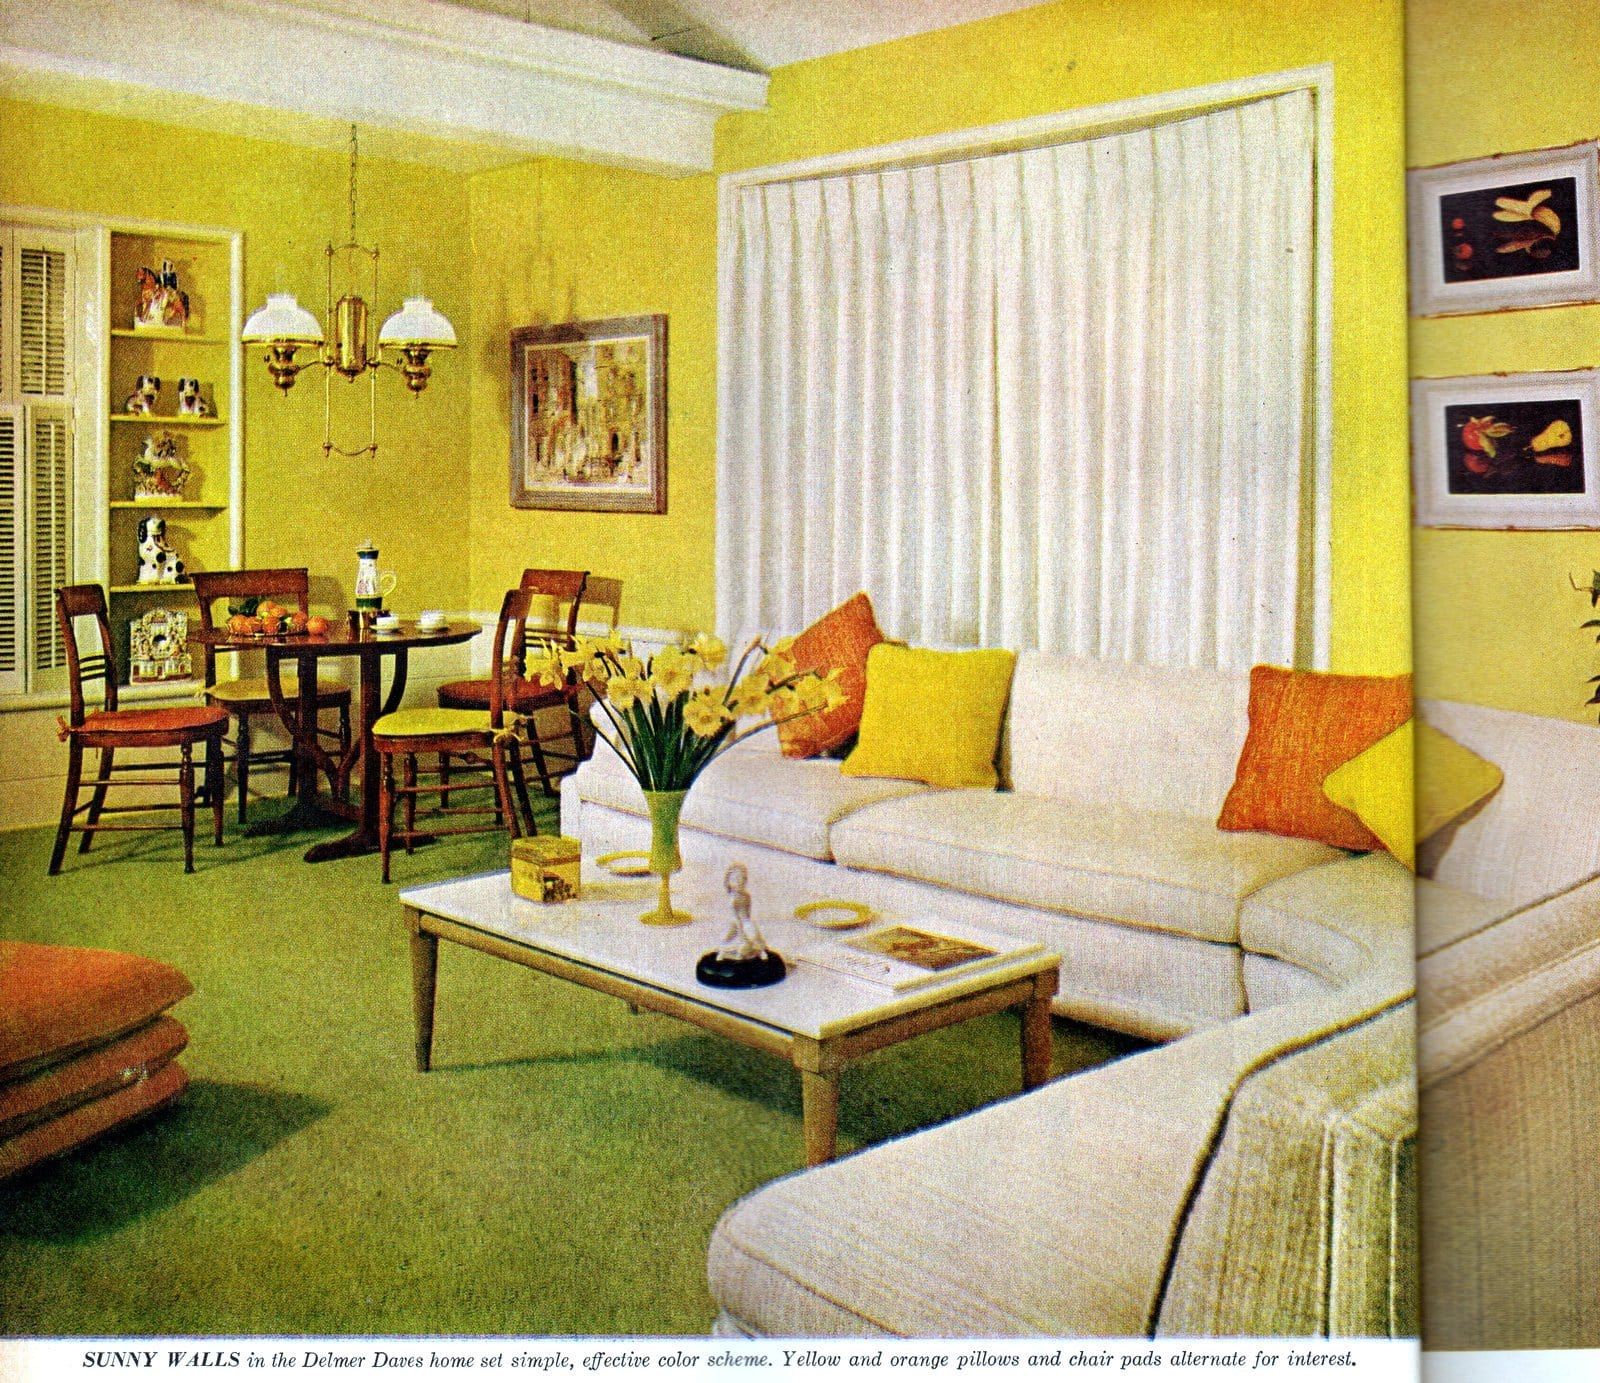 Vibrant yellow living room with orange and green accents and a white sofa (1959)